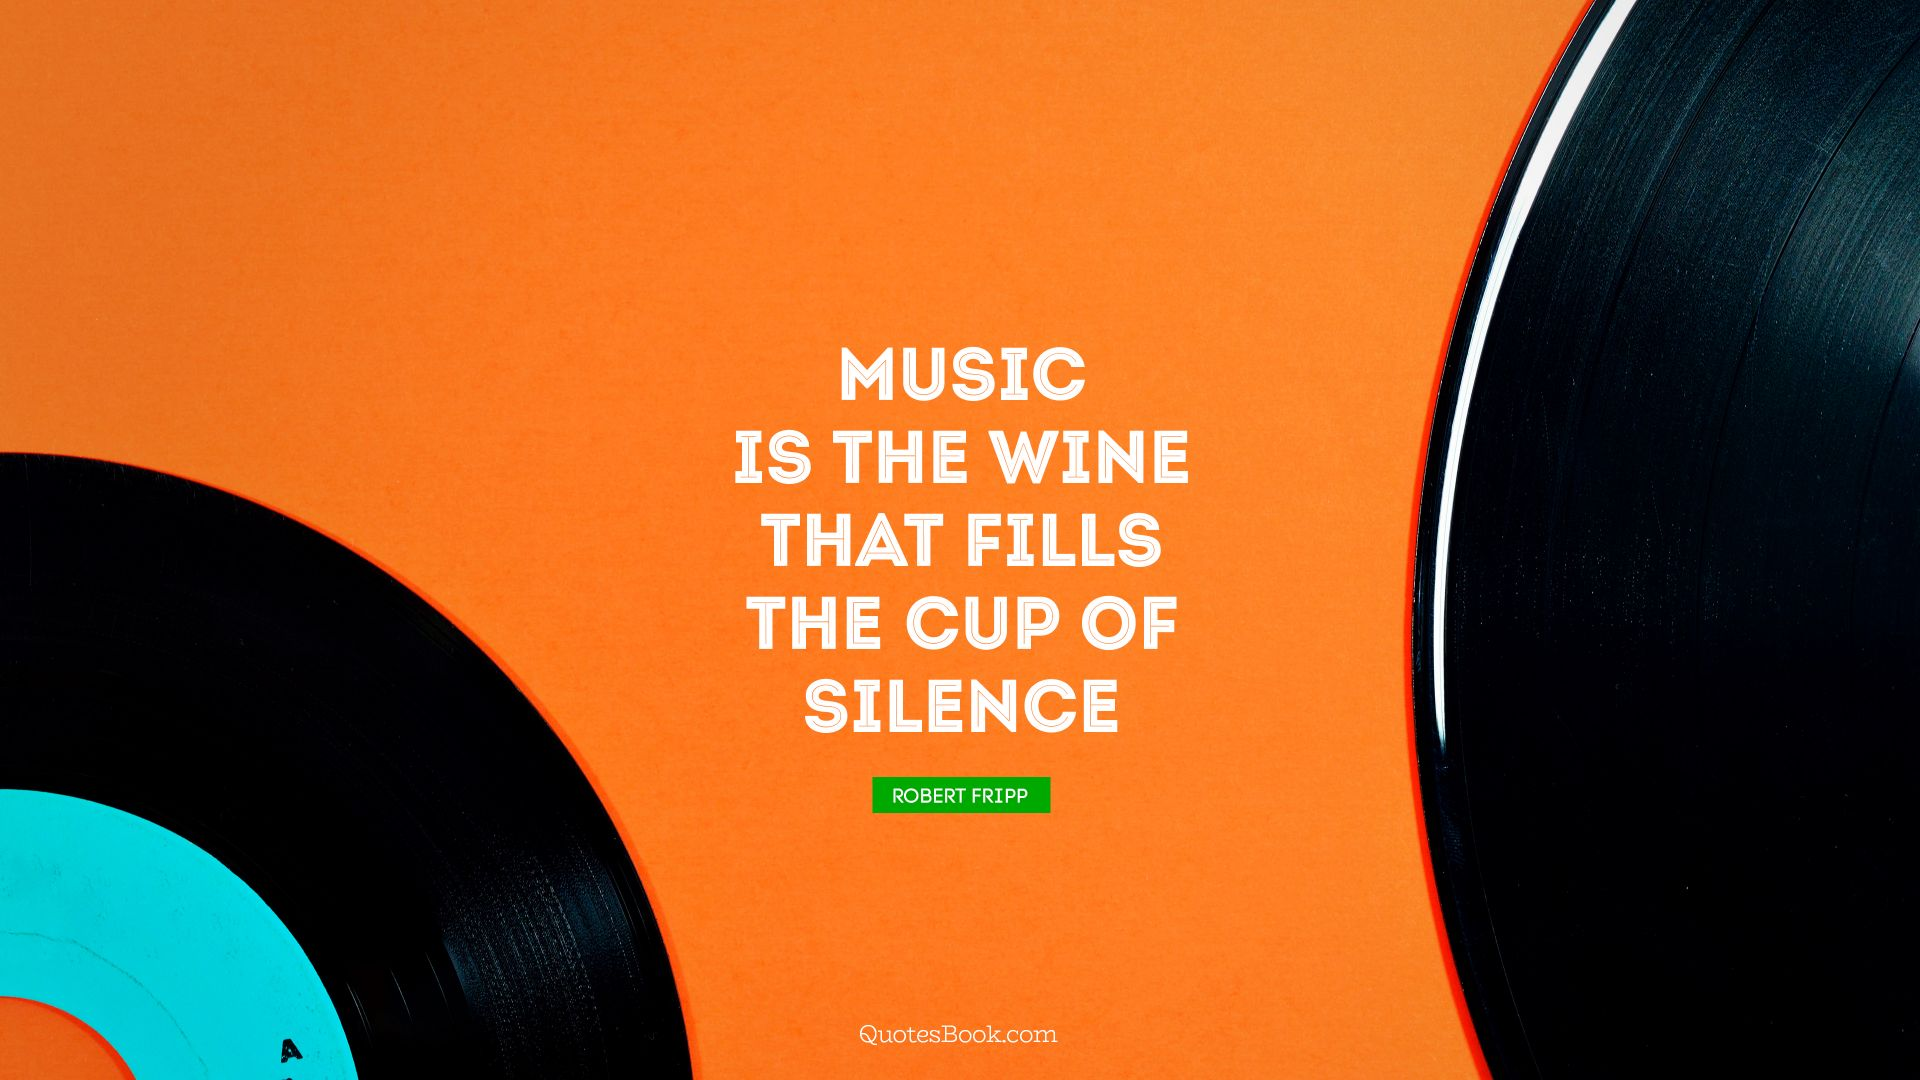 Music is the wine that fills the cup of silence. - Quote by Robert Fripp